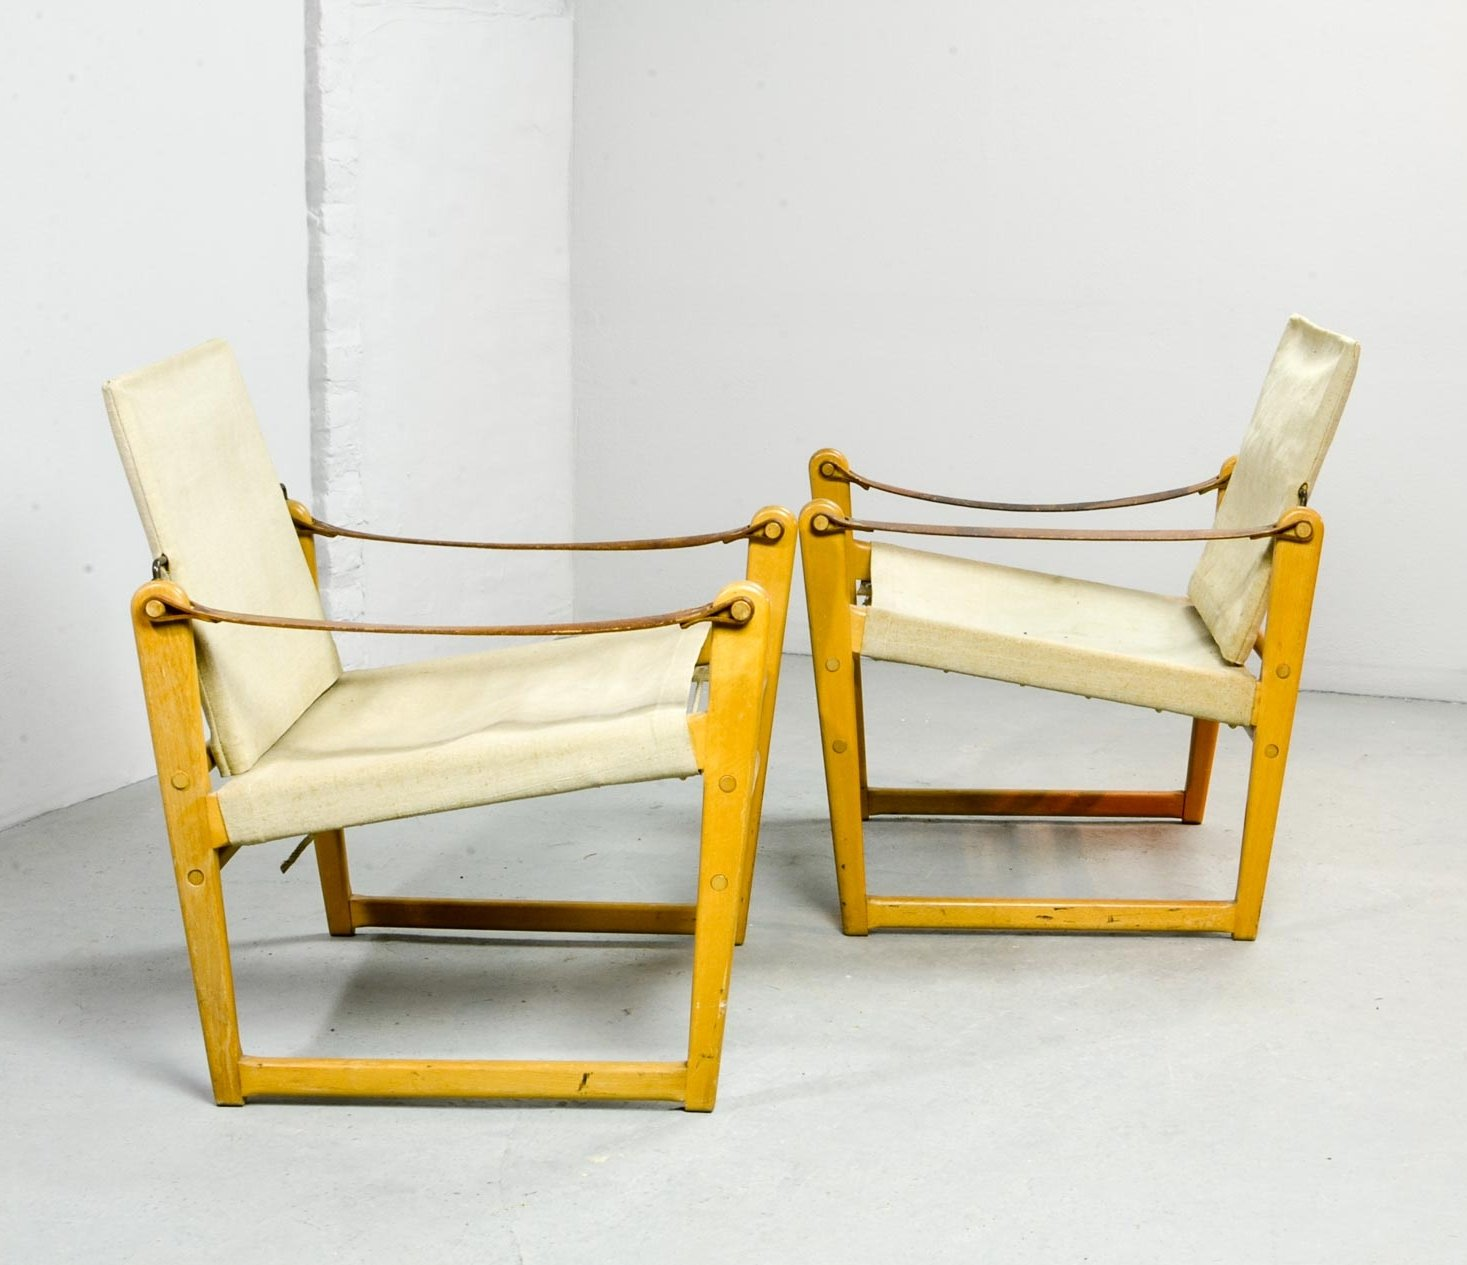 Pair Of Mid Century Safari Chairs By Bengt Ruda For Ikea, 1960s